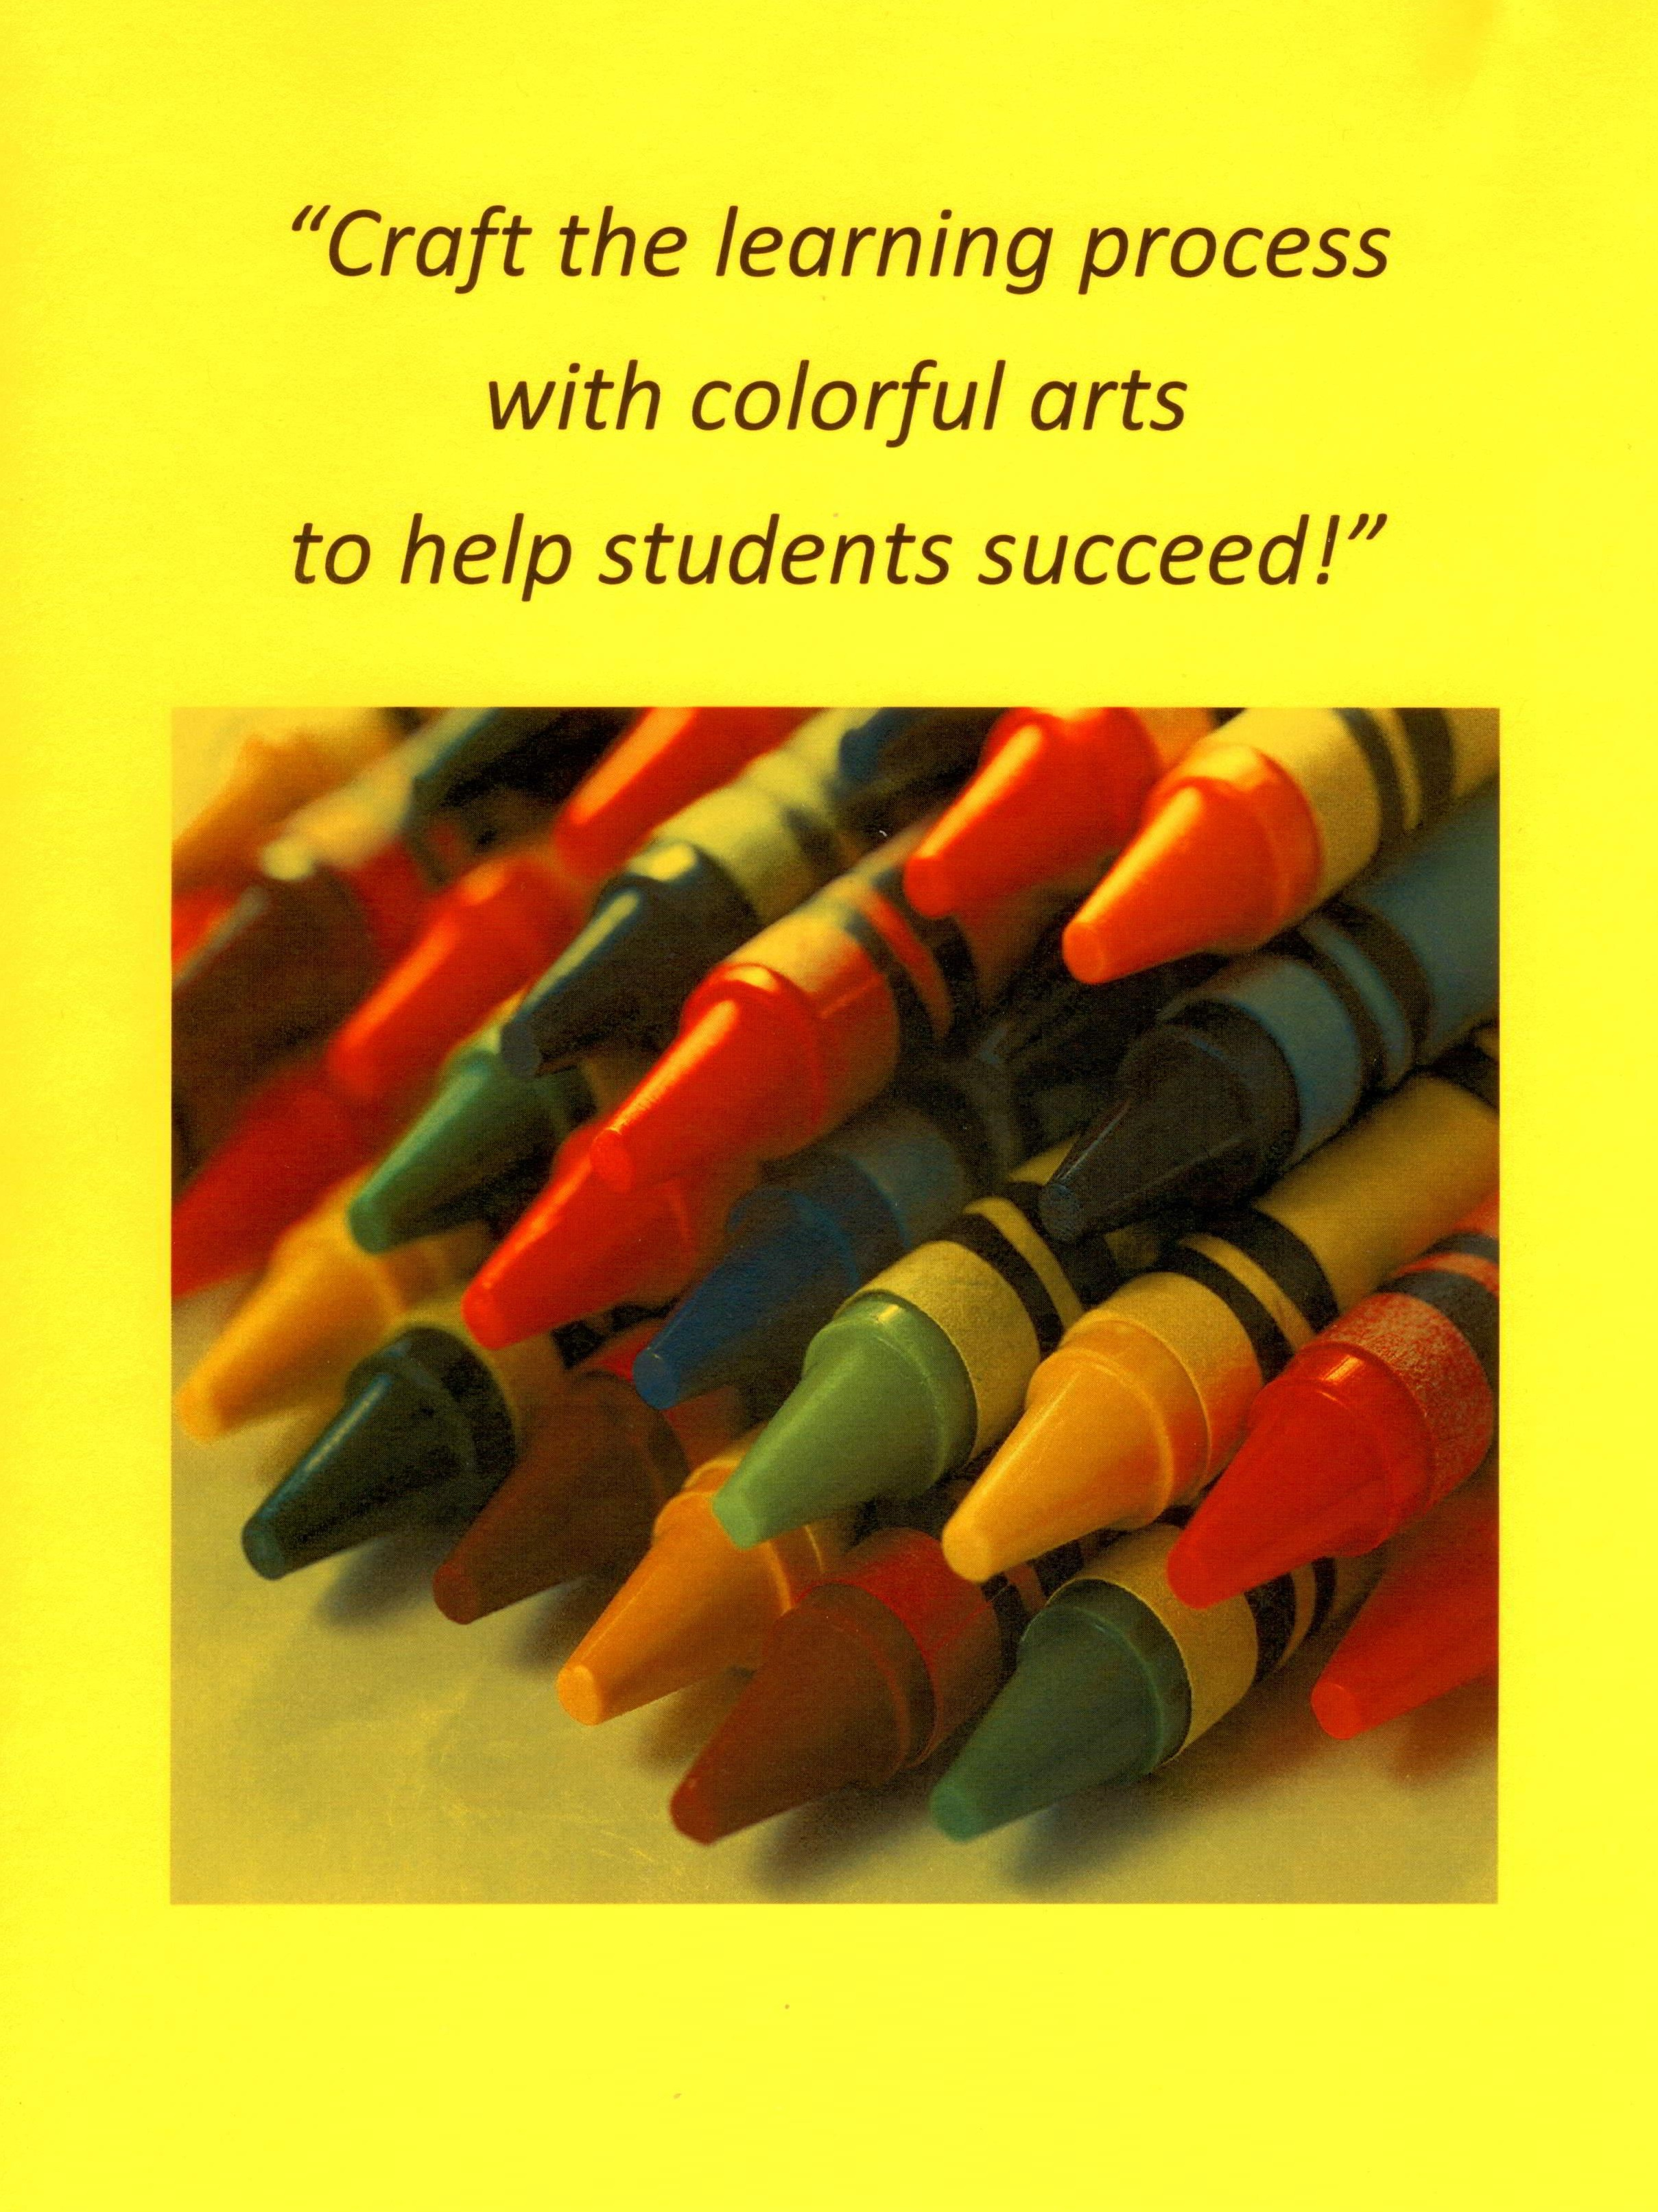 Top 10 skills children learn from the arts - The ...